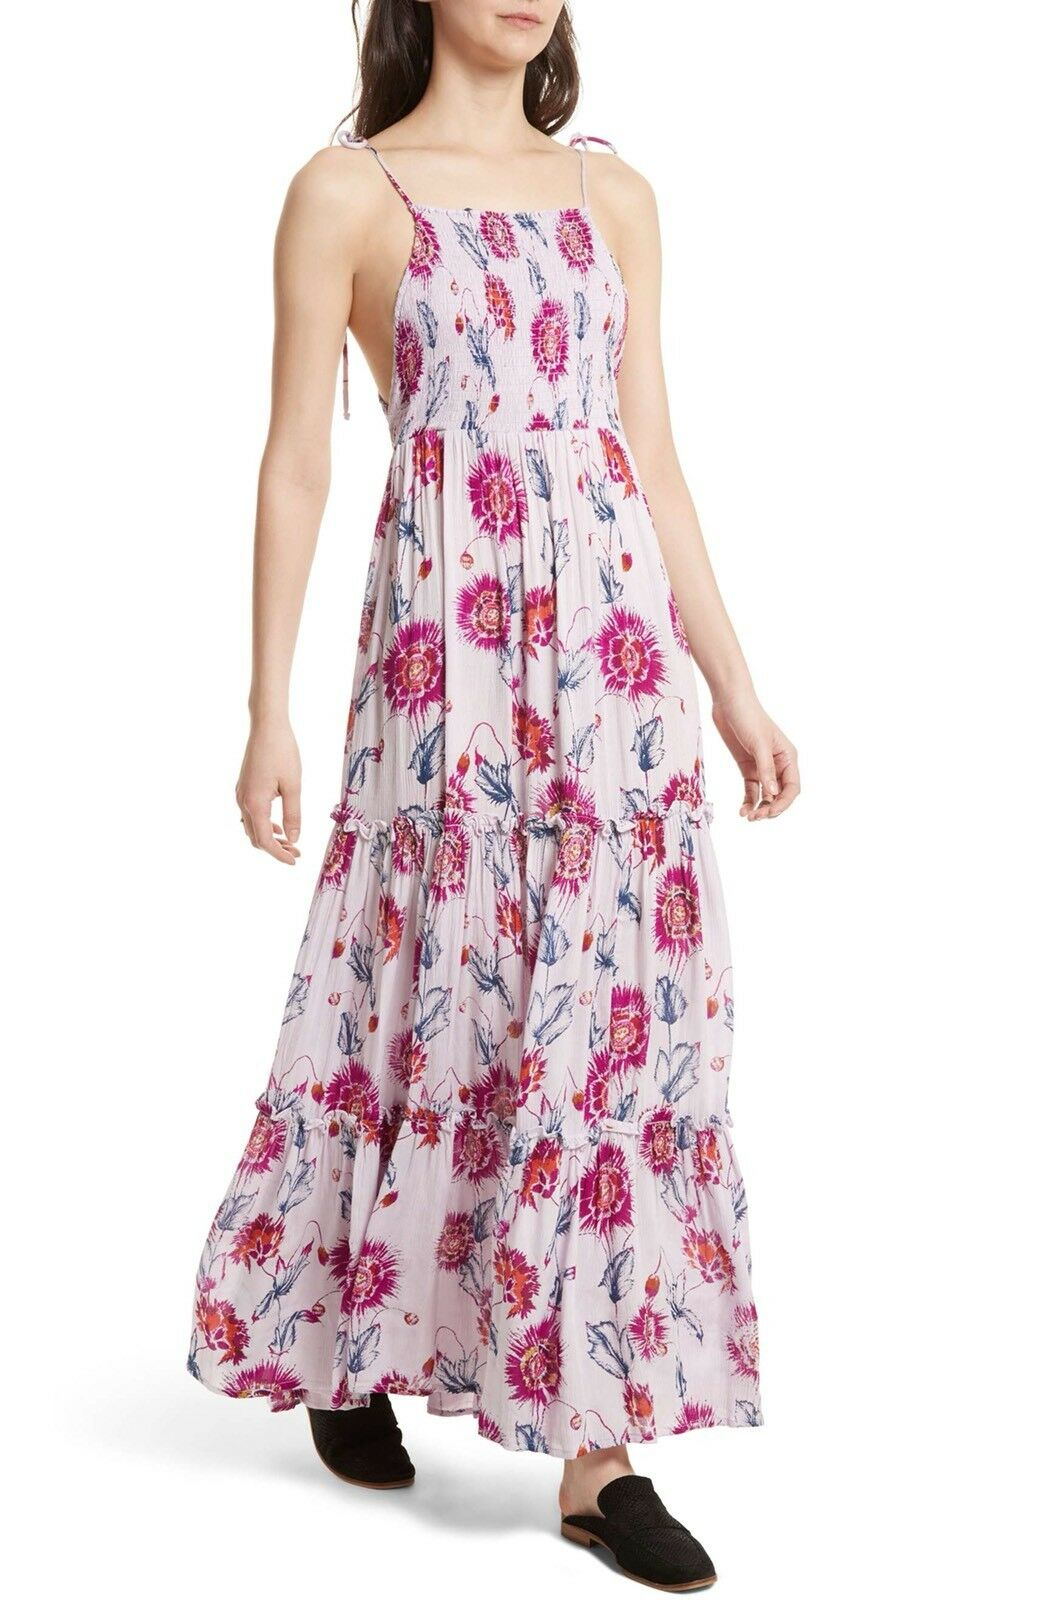 Free People Garden Party Floral Print Maxi Dress lila Combo Größe S